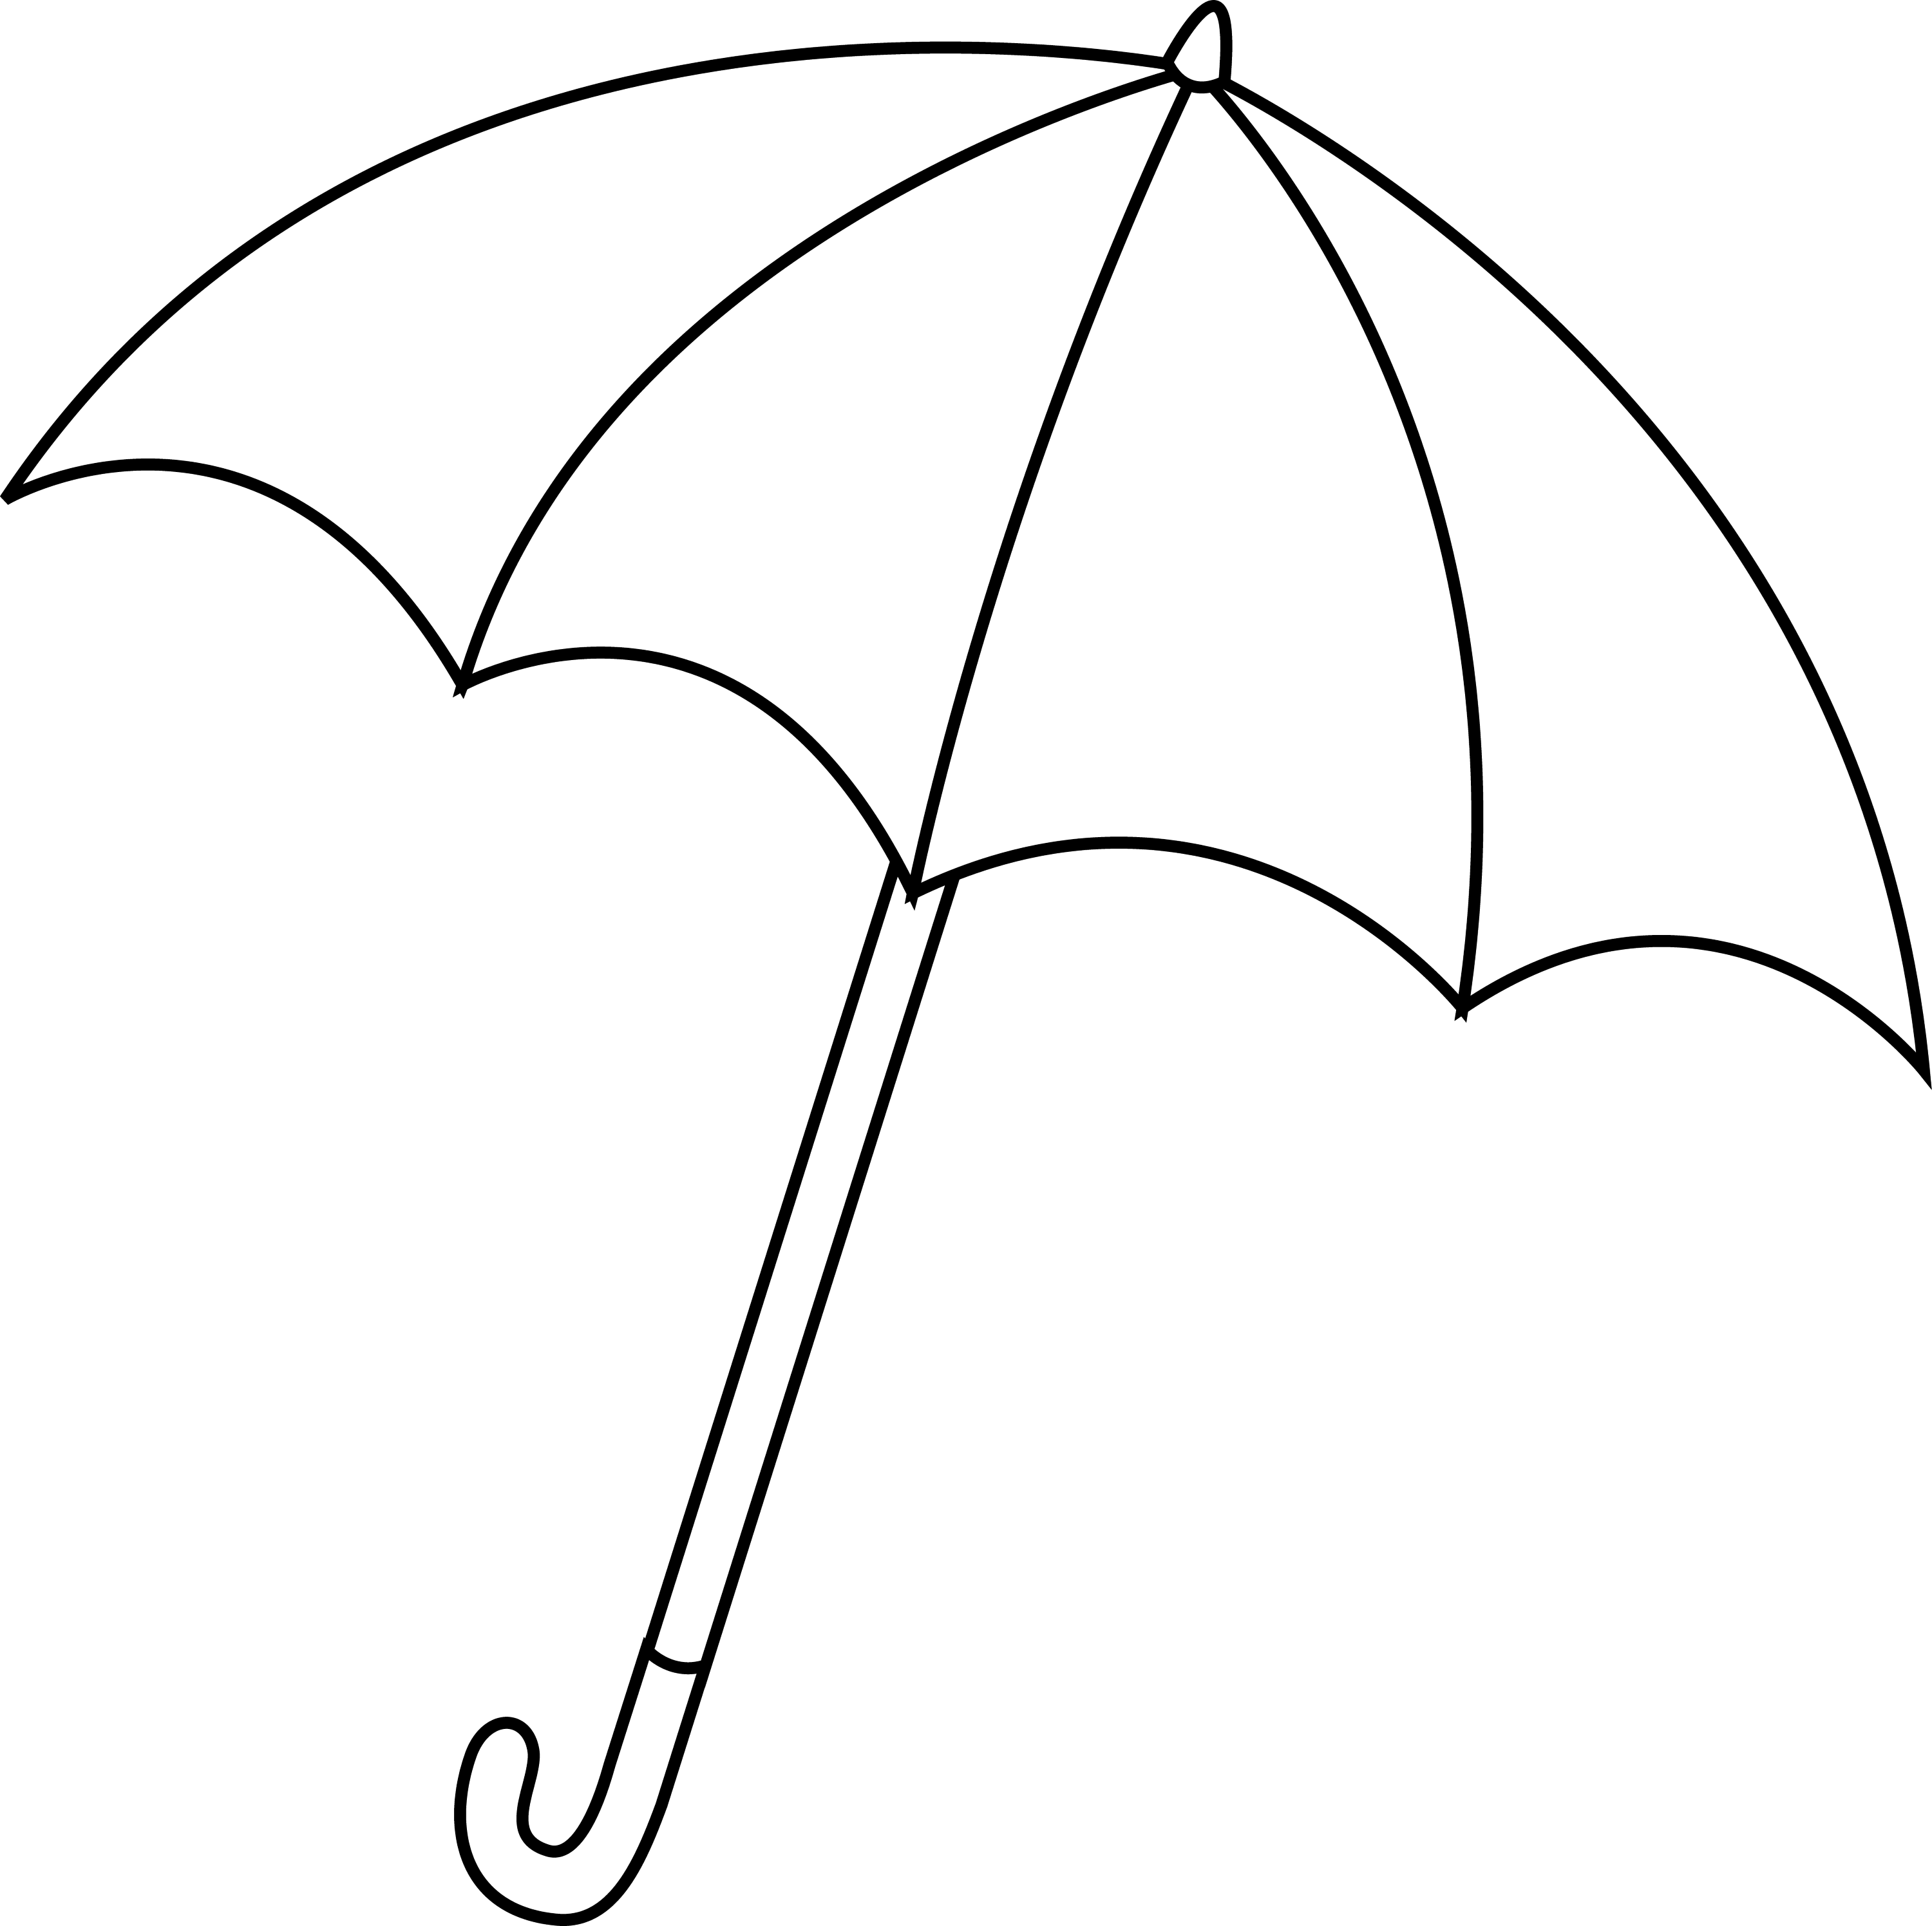 colouring picture of umbrella rain umbrella drawing at getdrawings free download picture colouring of umbrella